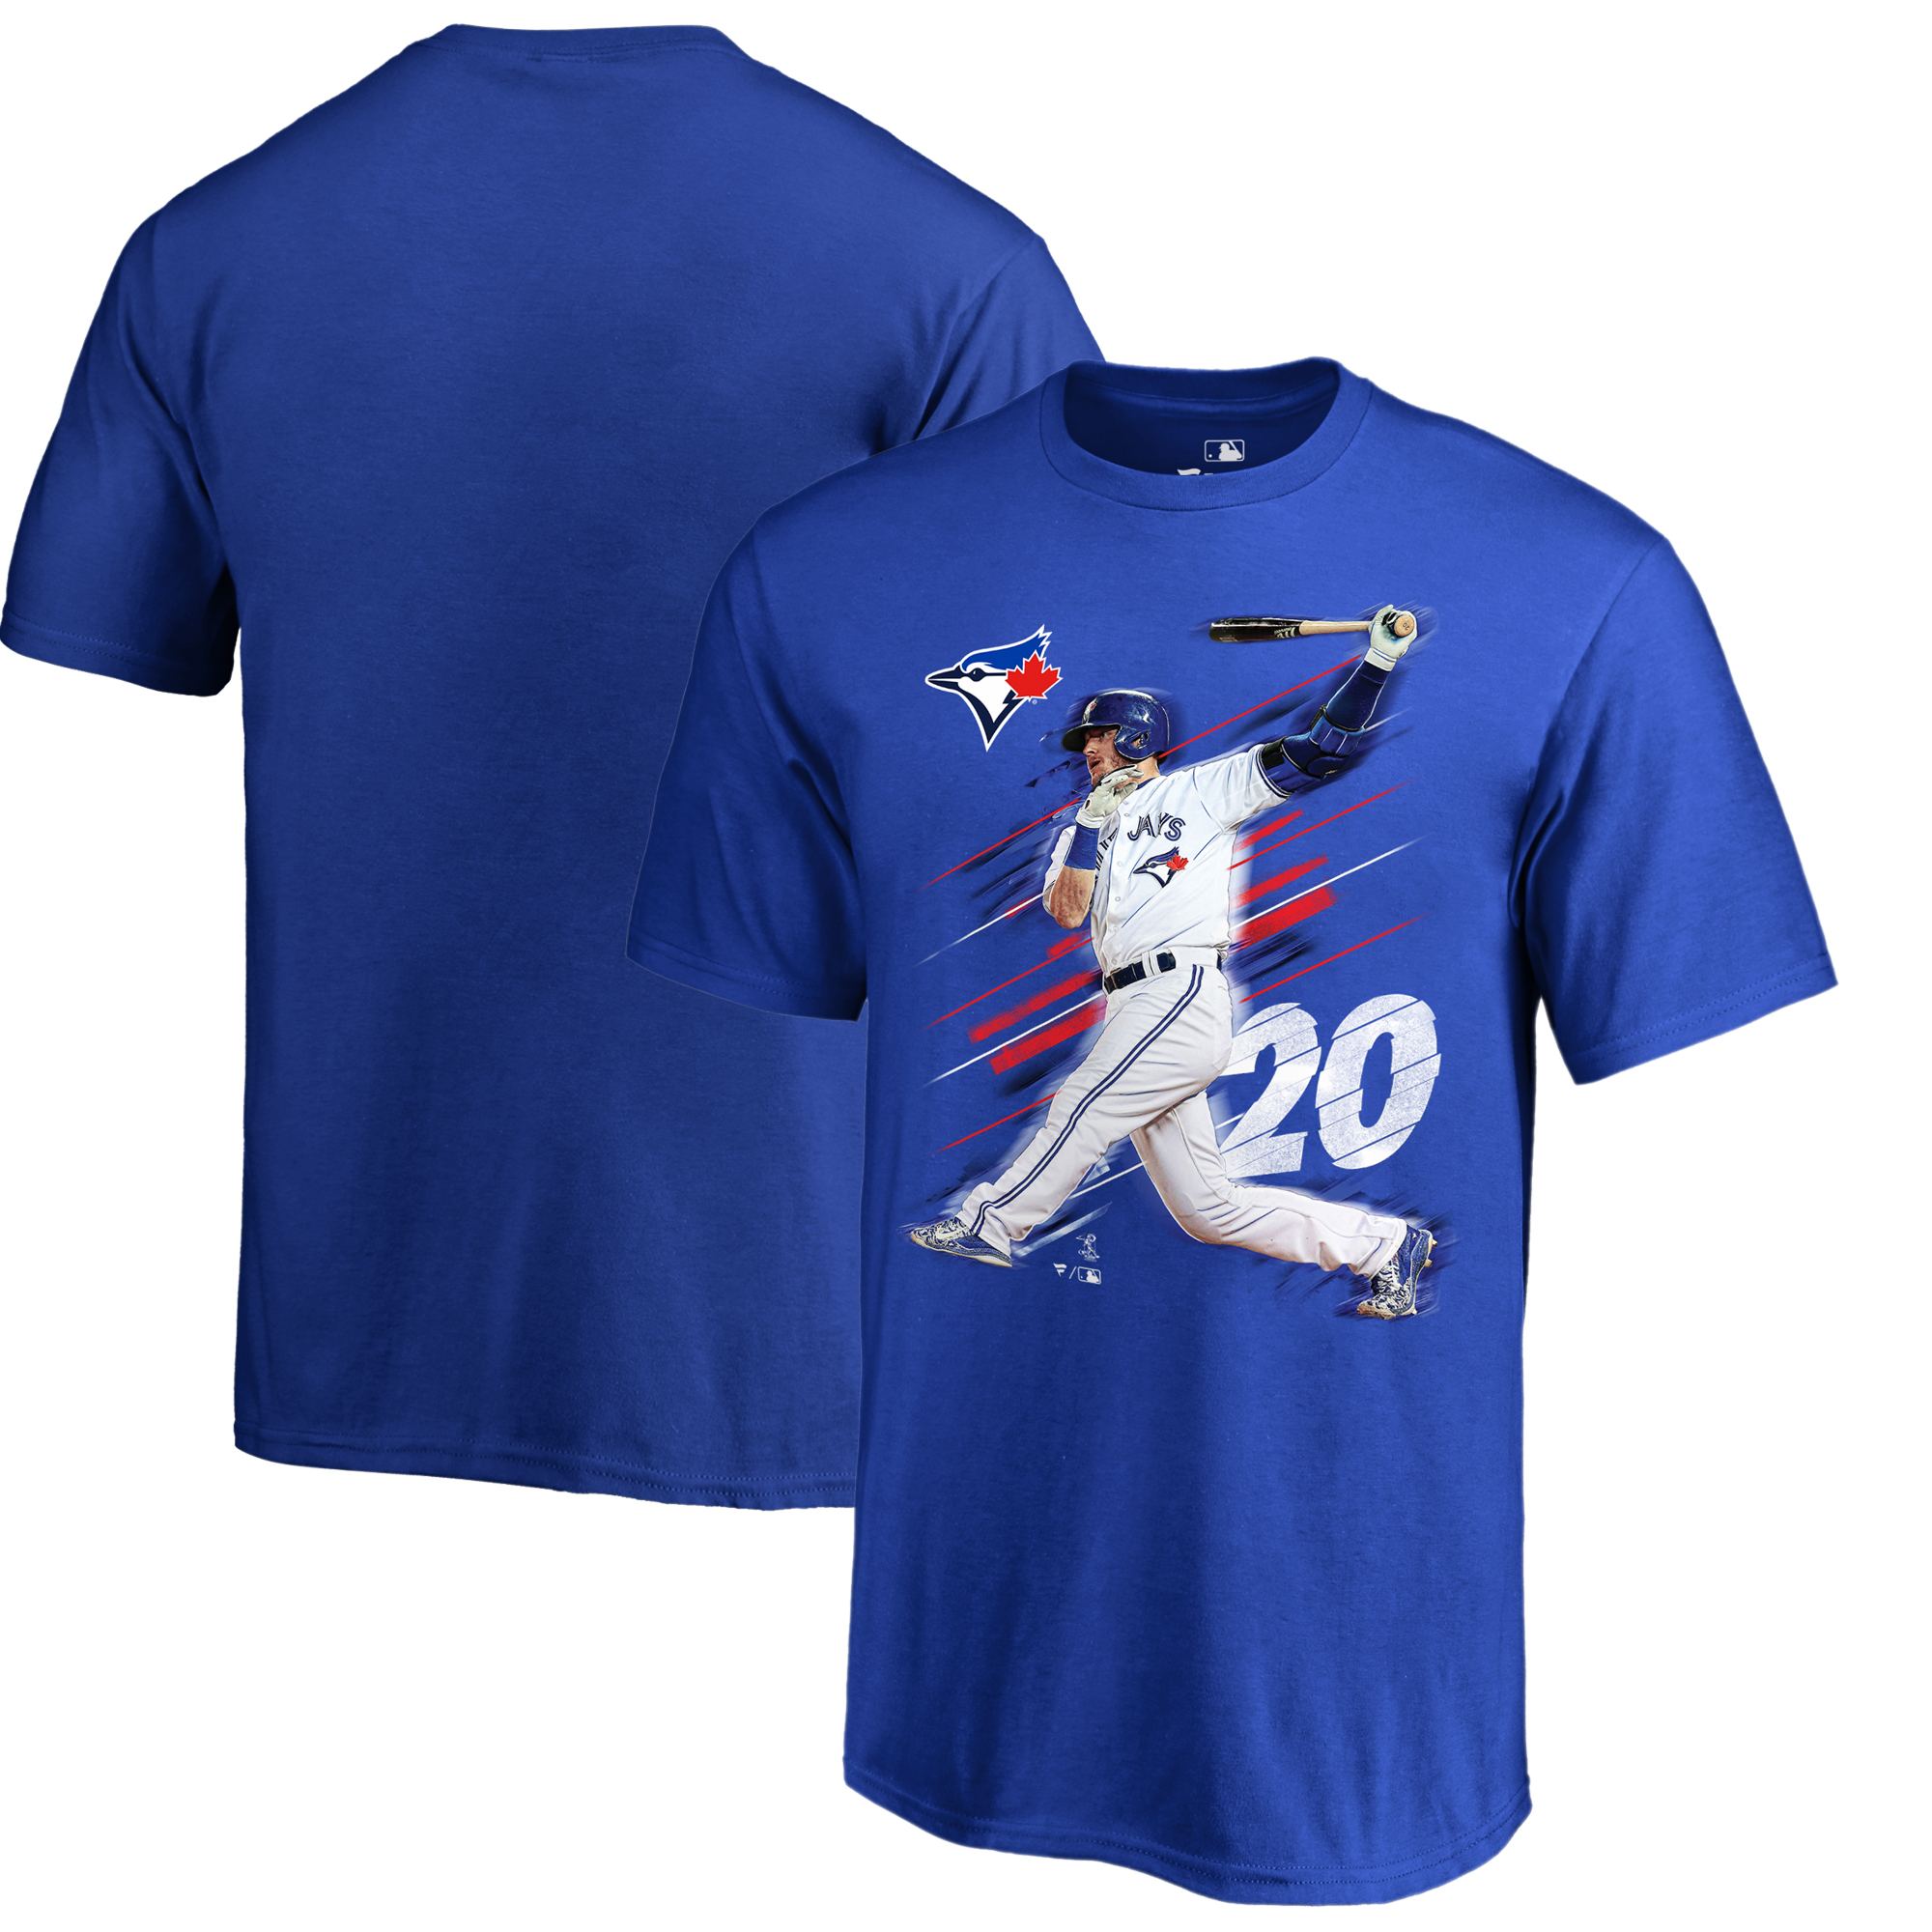 Josh Donaldson Toronto Blue Jays Fanatics Branded Youth Fade Away T-Shirt - Royal